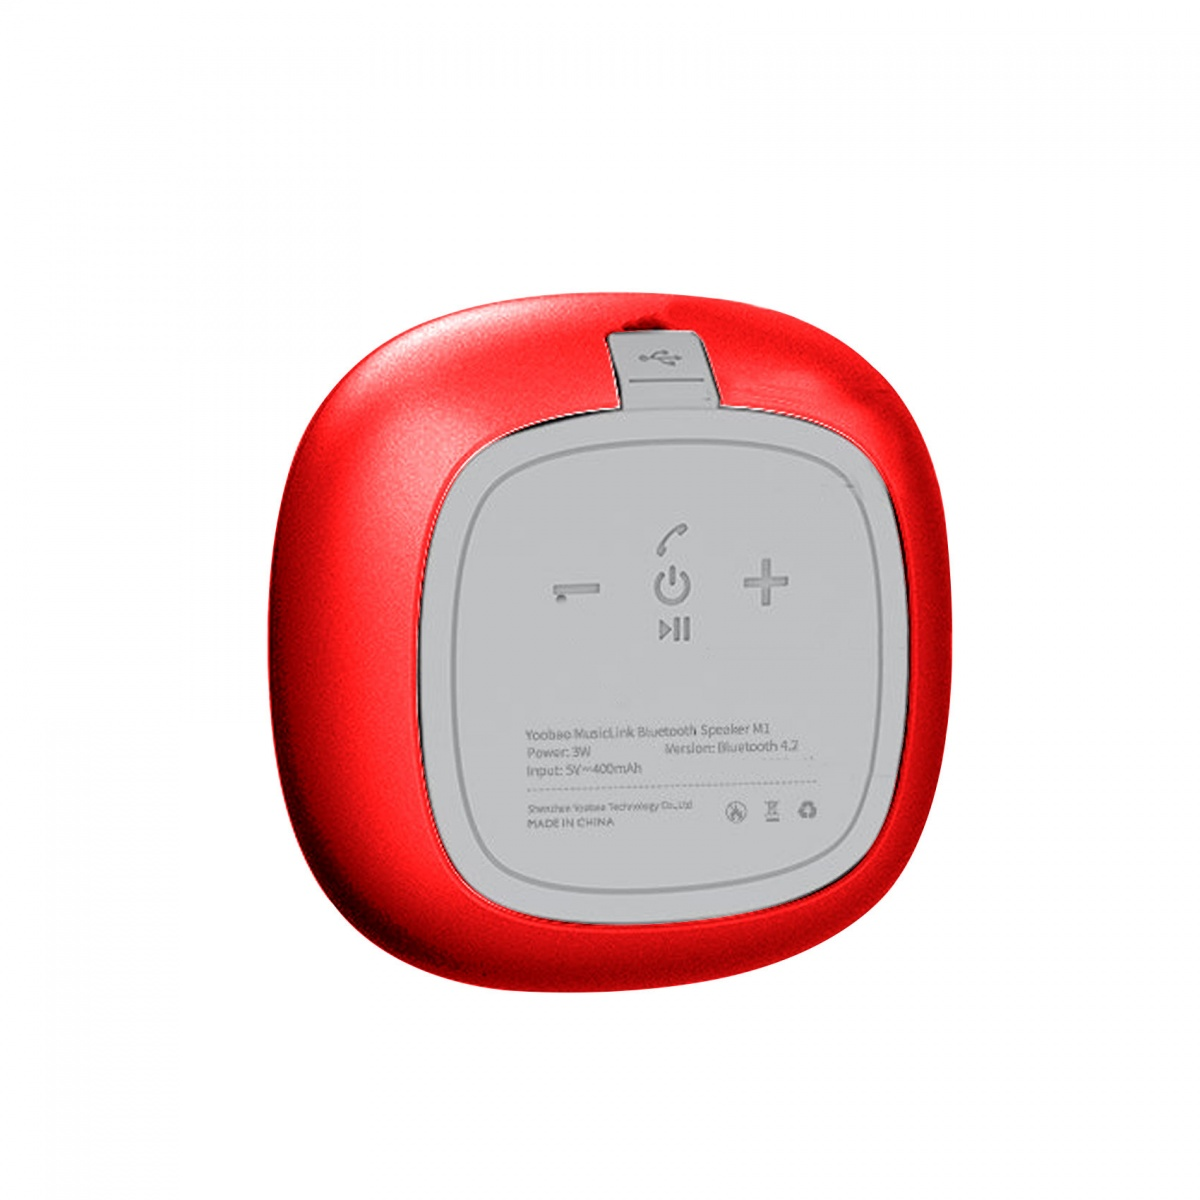 Yoobao M1 Portable Bluetooth Speaker – Red 4